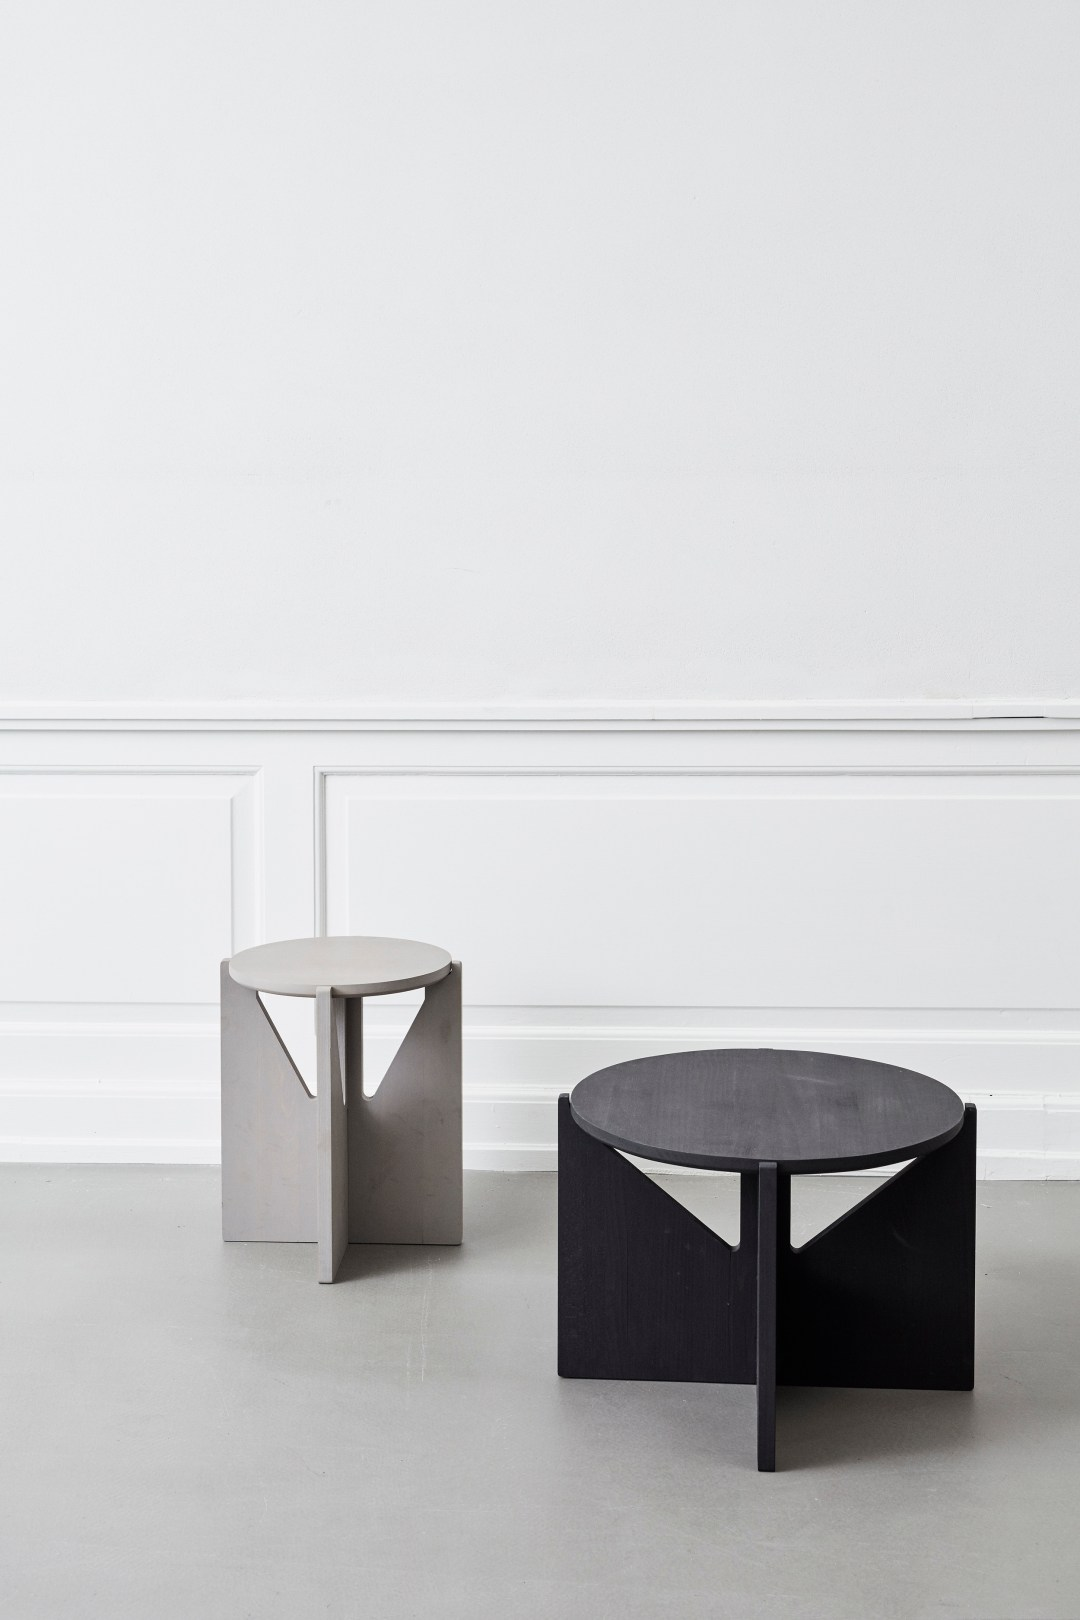 Kristina Dam minimalist tables and stool